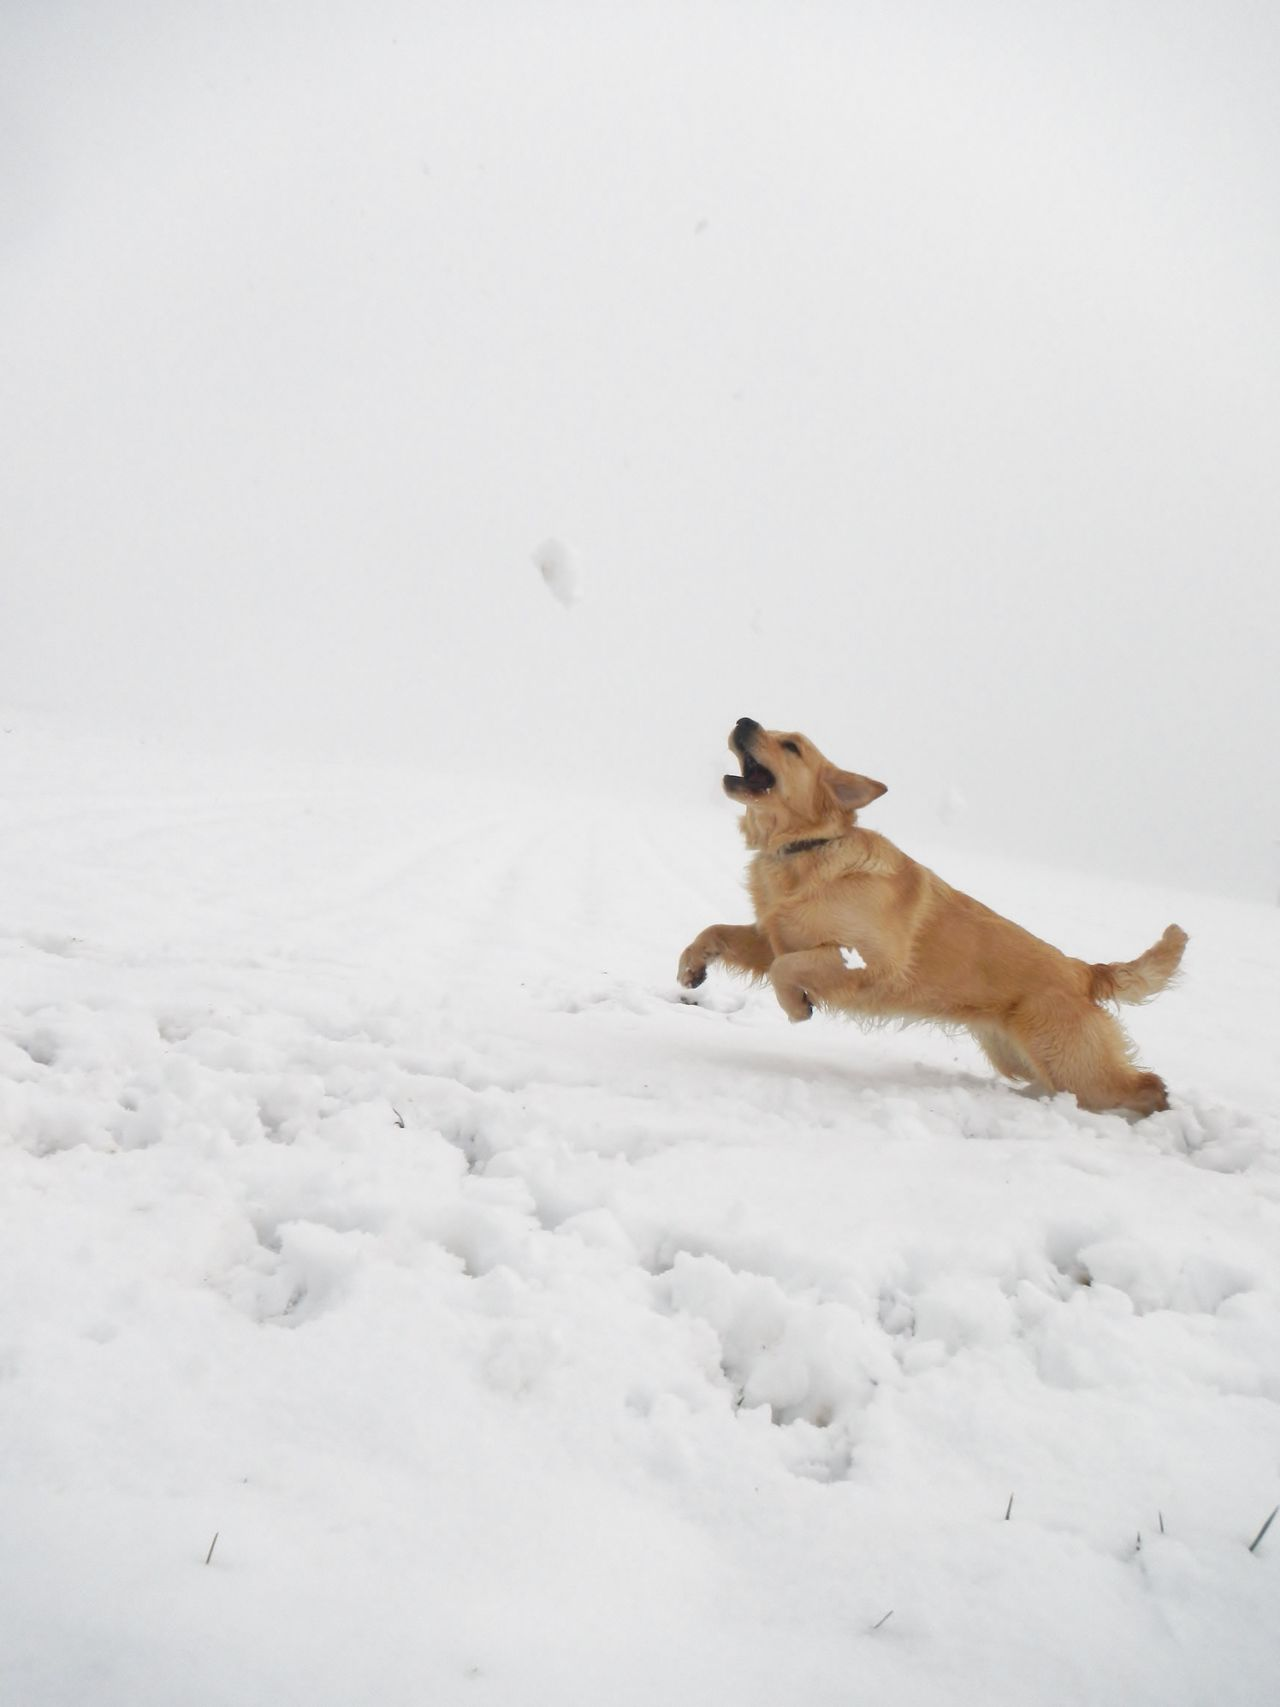 Activity Dog Dog Love Dogs In The Snow Dogs Of EyeEm Dogs Of Winter EyeEm Gallery EyeEm Nature Lover Golden Retriever Jumping ! Natural Beauty Nature Nature_collection Nature On Your Doorstep Nature Photography Nature_collection Outdoor Photography Outdoors Running Dog Snowscape Chaching Capturing Movement Photography In Motion Slovenia Scapes Need For Speed Waiting Game My Year My View